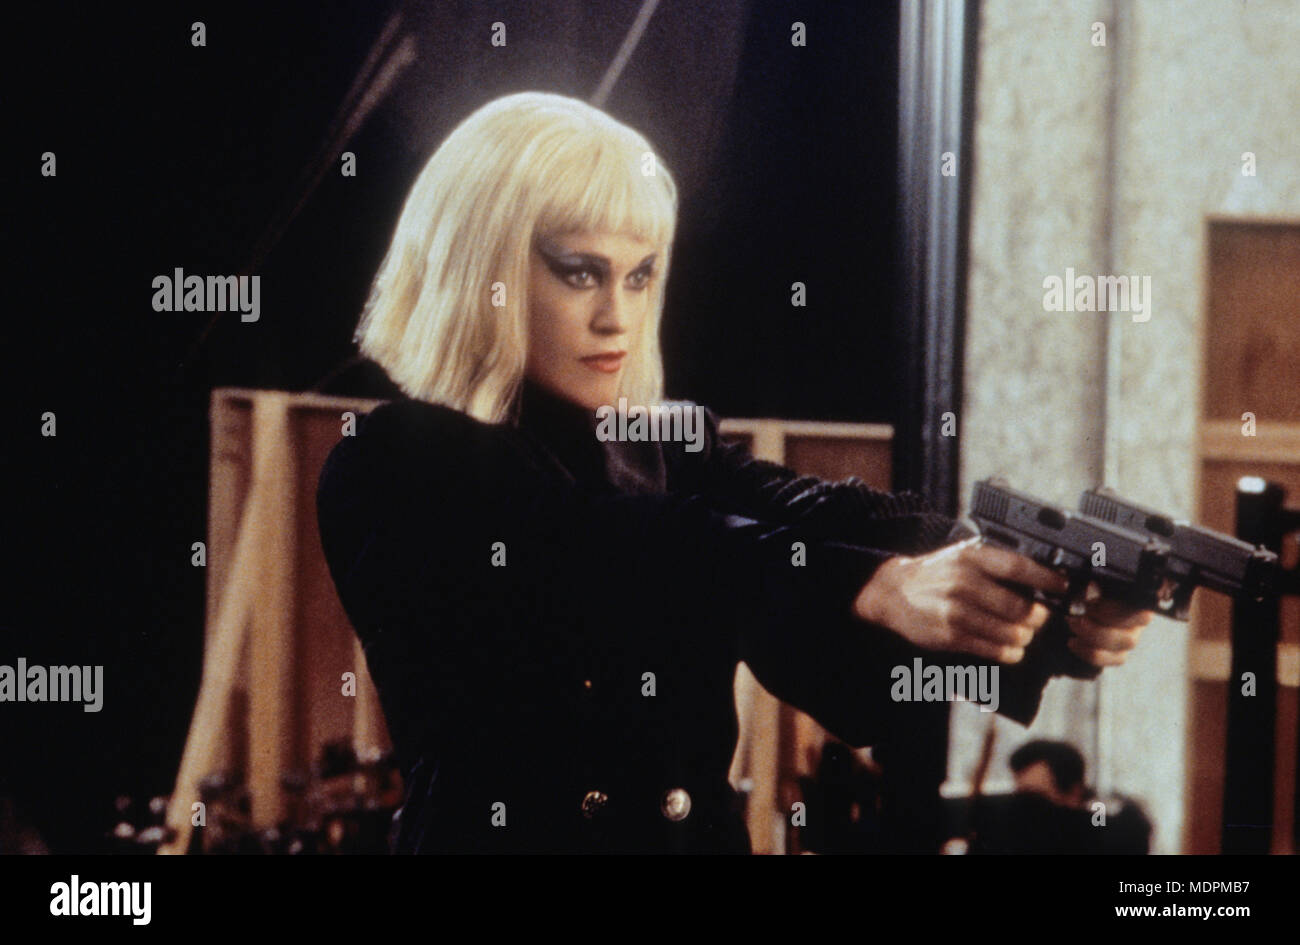 Cecil B. DeMented, Melanie griffith, 2000 - Stock Image